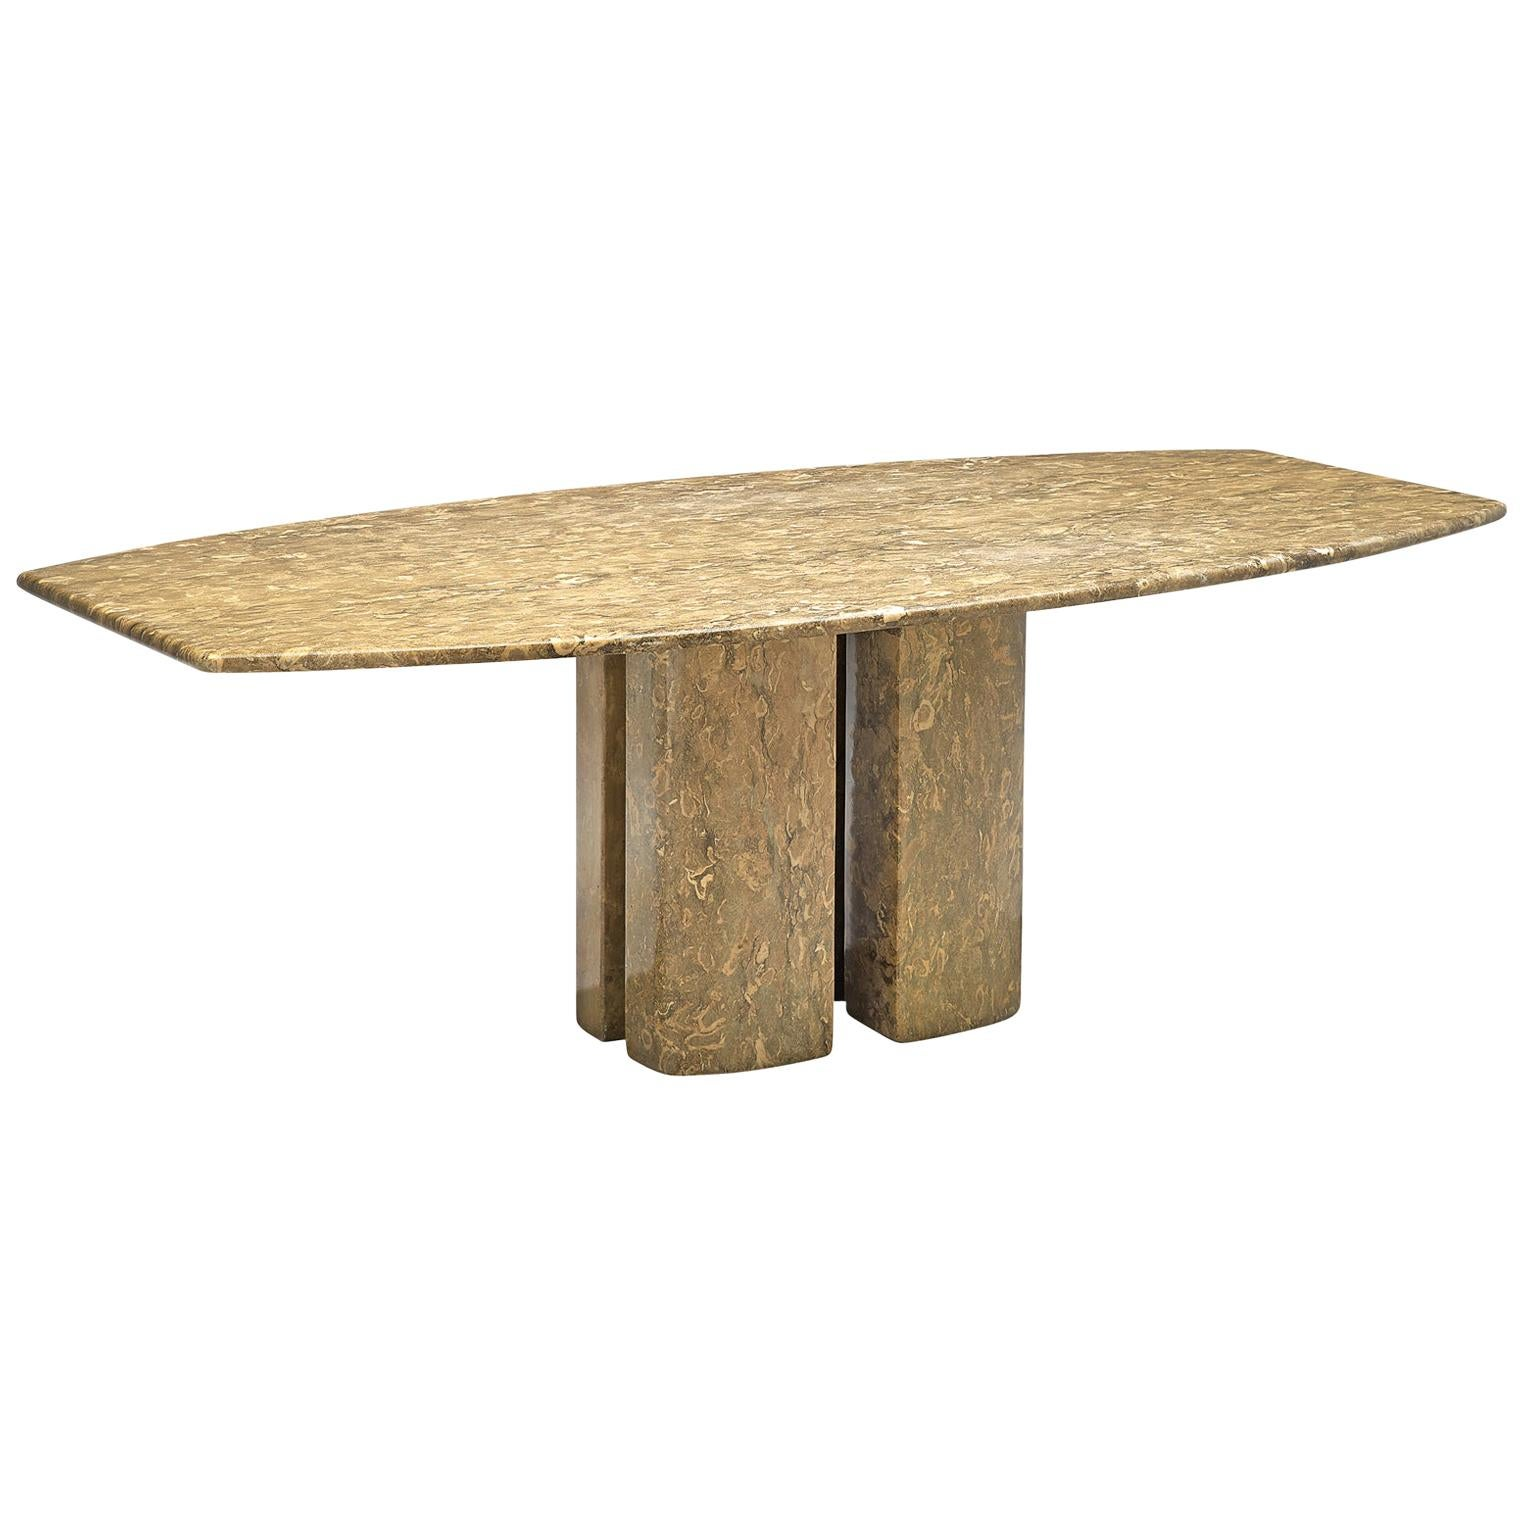 Italian Pedestal Dining Table in Marble